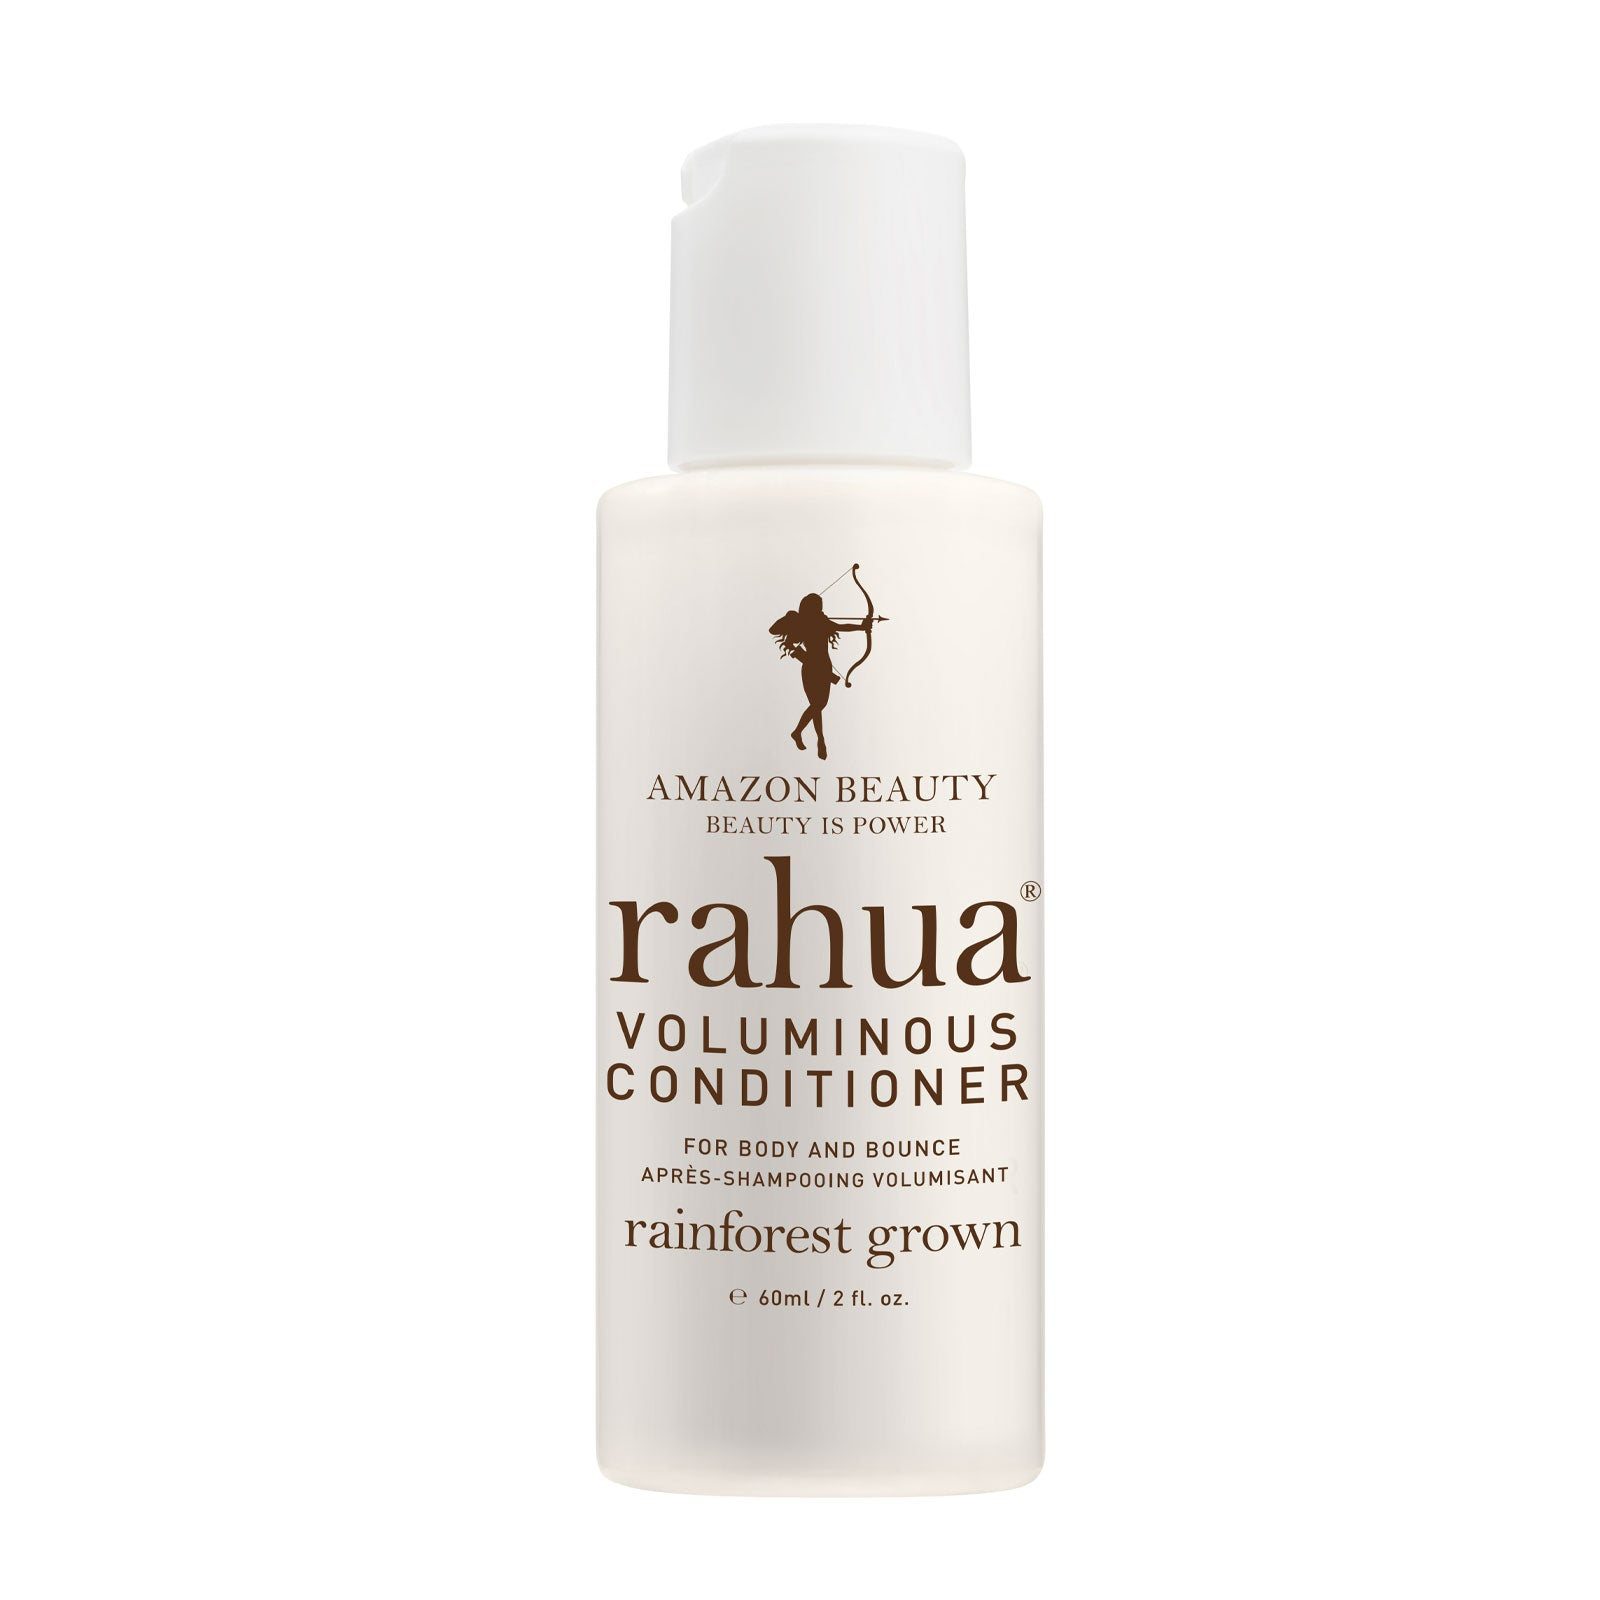 Rahua Voluminous Conditioner Travel Size 60ml